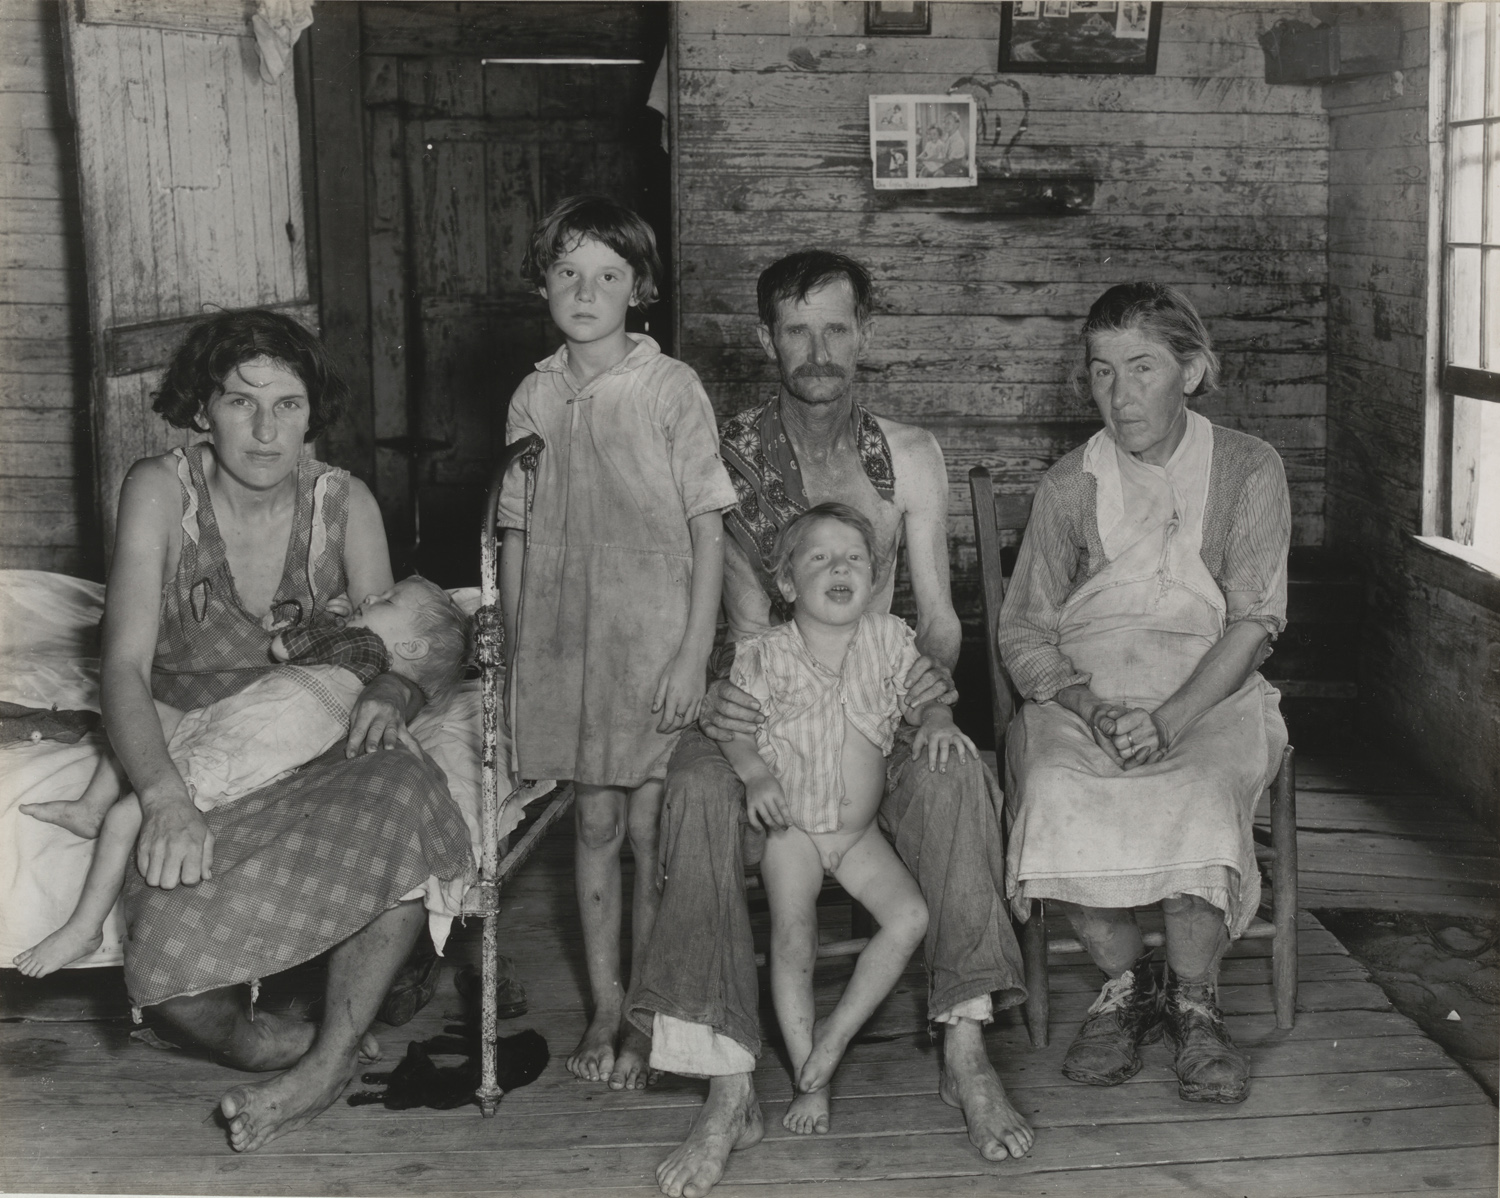 history of the united states and the unemployment in the 1930 s Detailed timeline timeline of legal history of women in the united states the supreme court upholds women's right to unemployment benefits during the last.